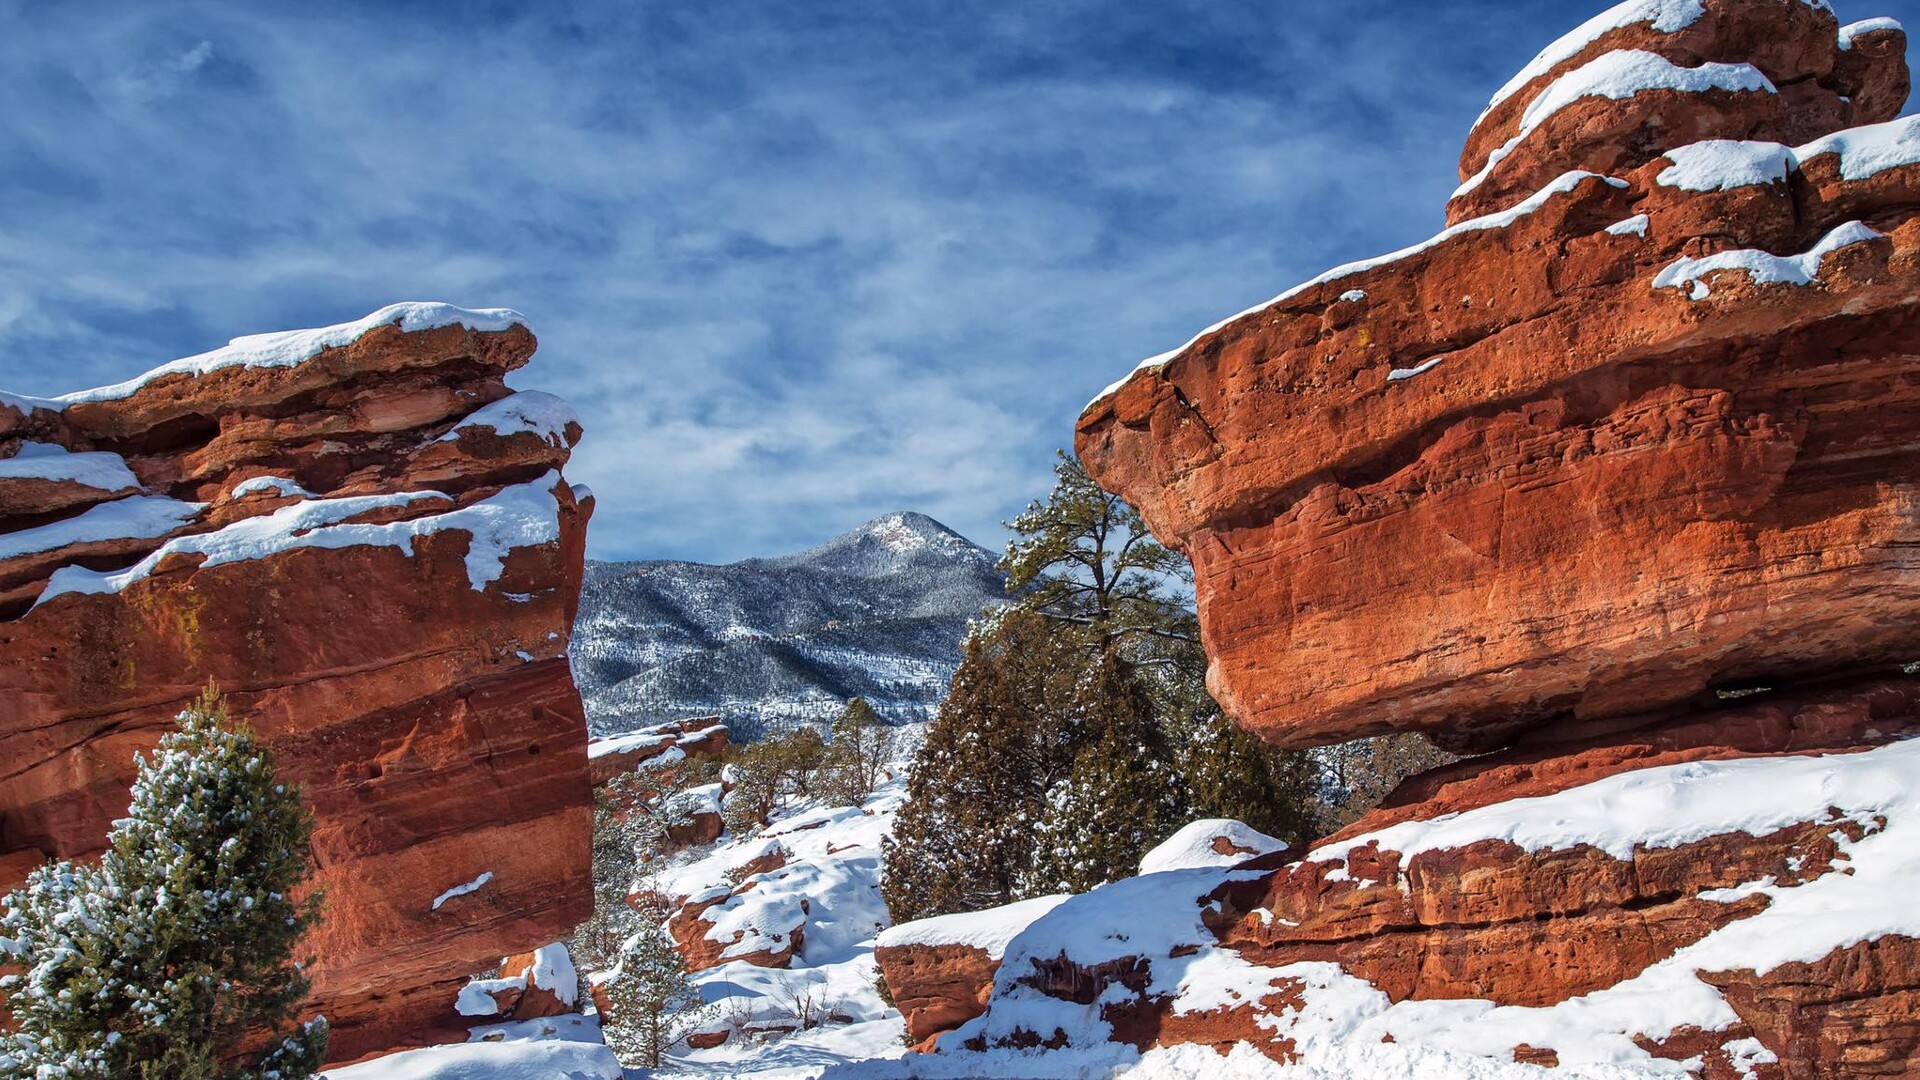 Garden of the Gods Snow Bruce Hausknecht.jpg